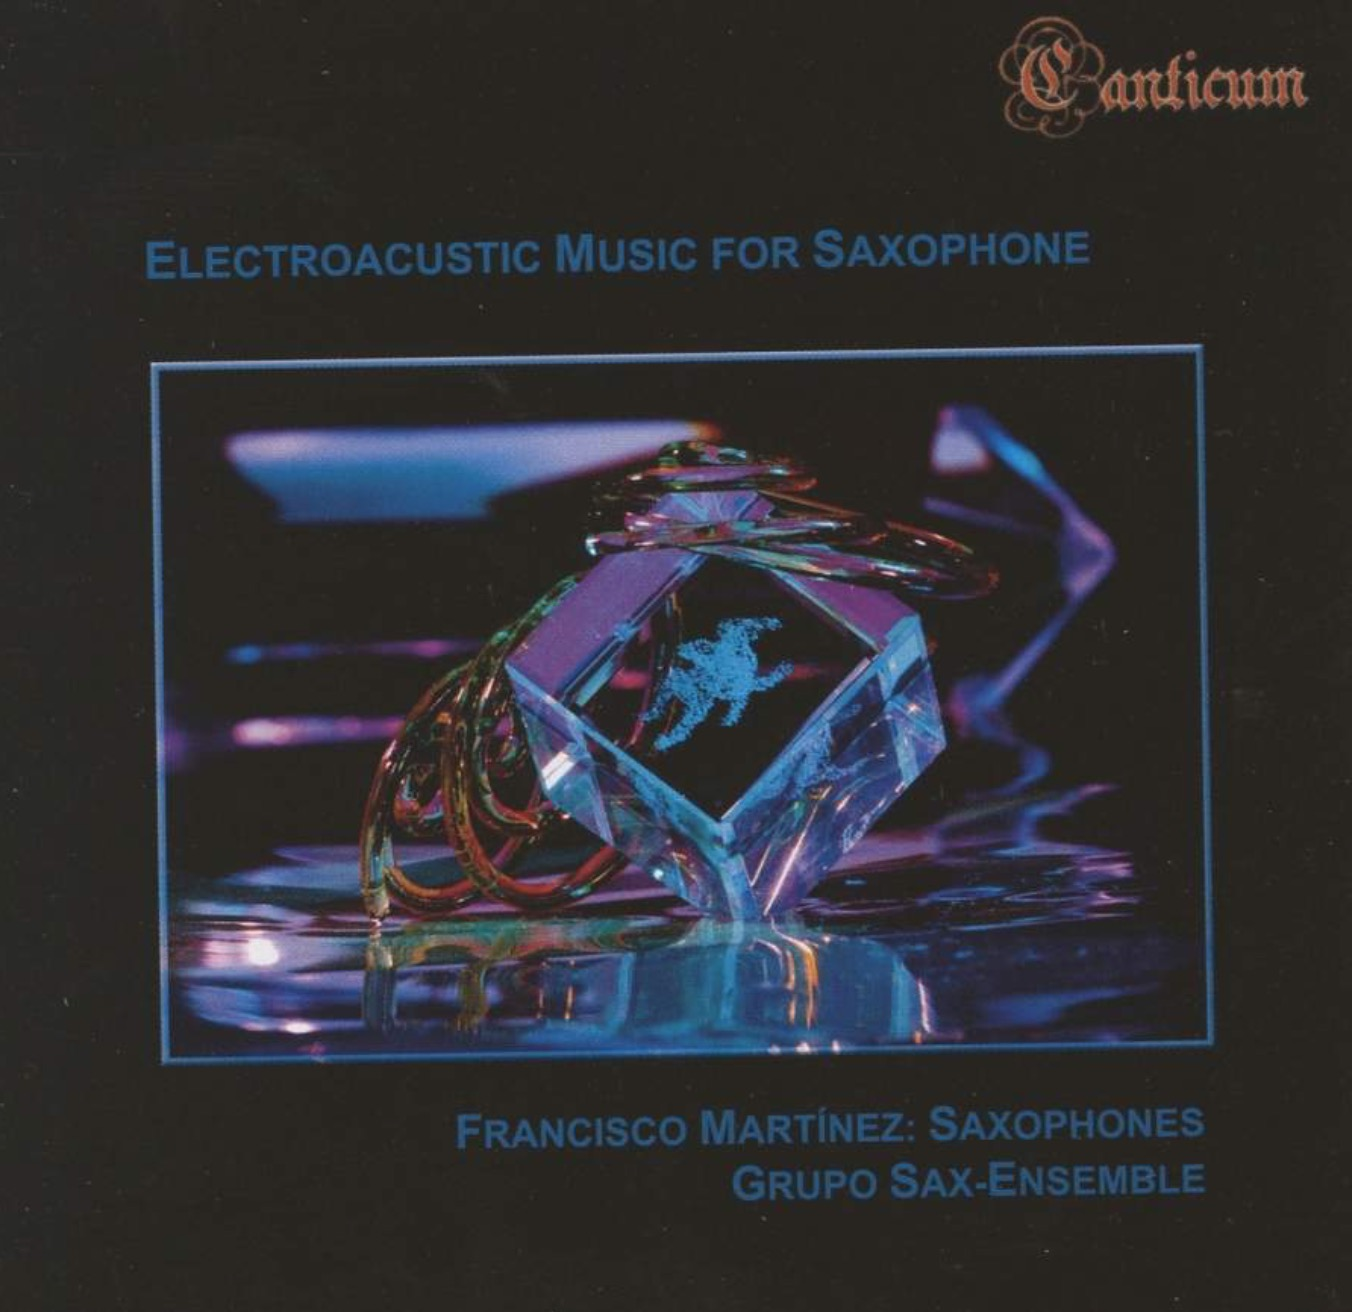 Electroacoustic music for saxophone